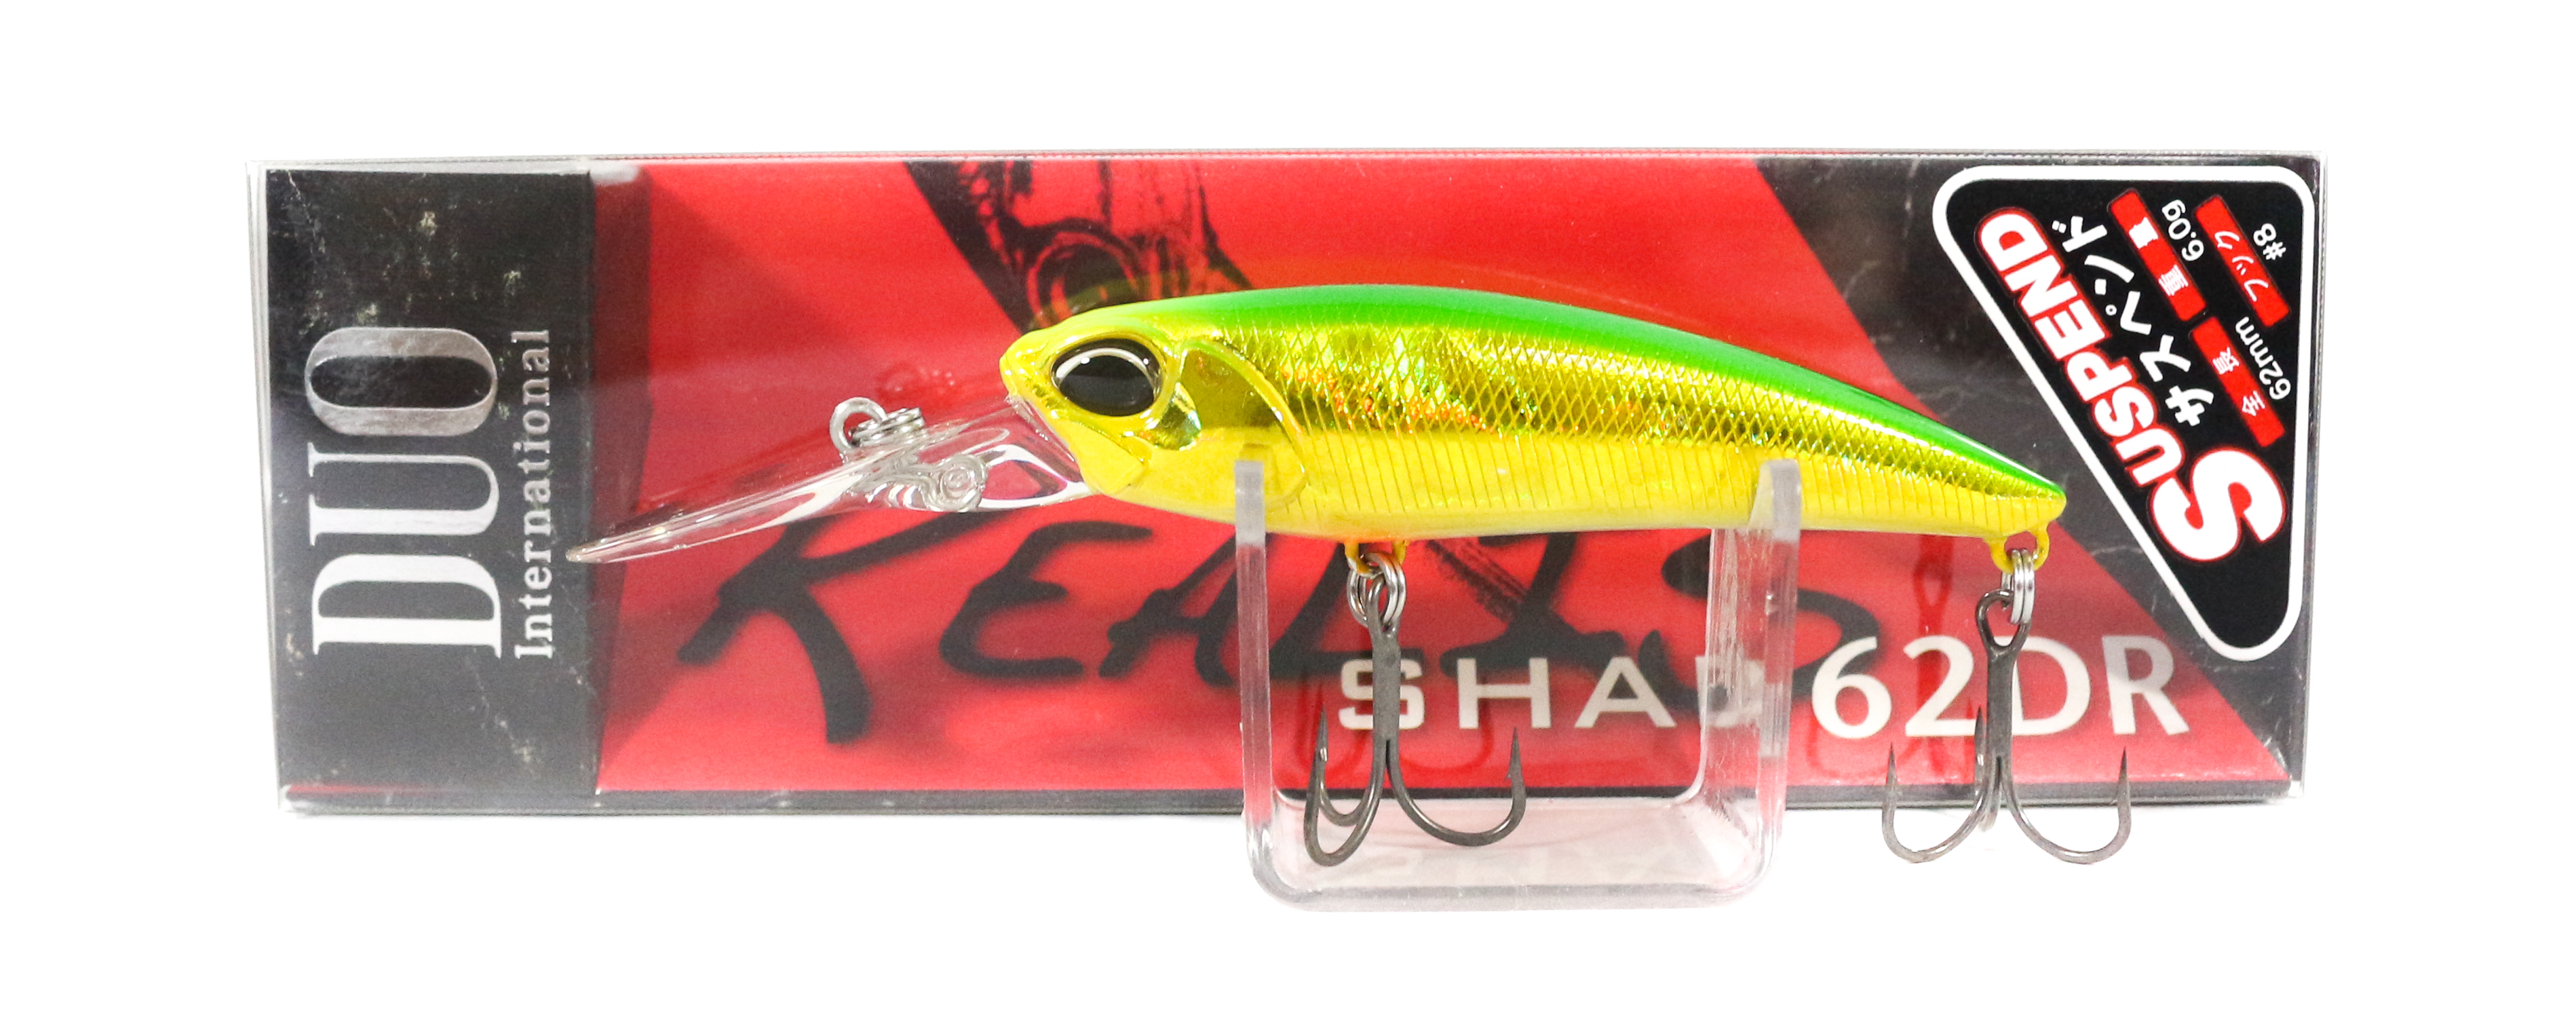 Duo Realis Shad 62 DR Suspend Lure ADA3185 (4066)